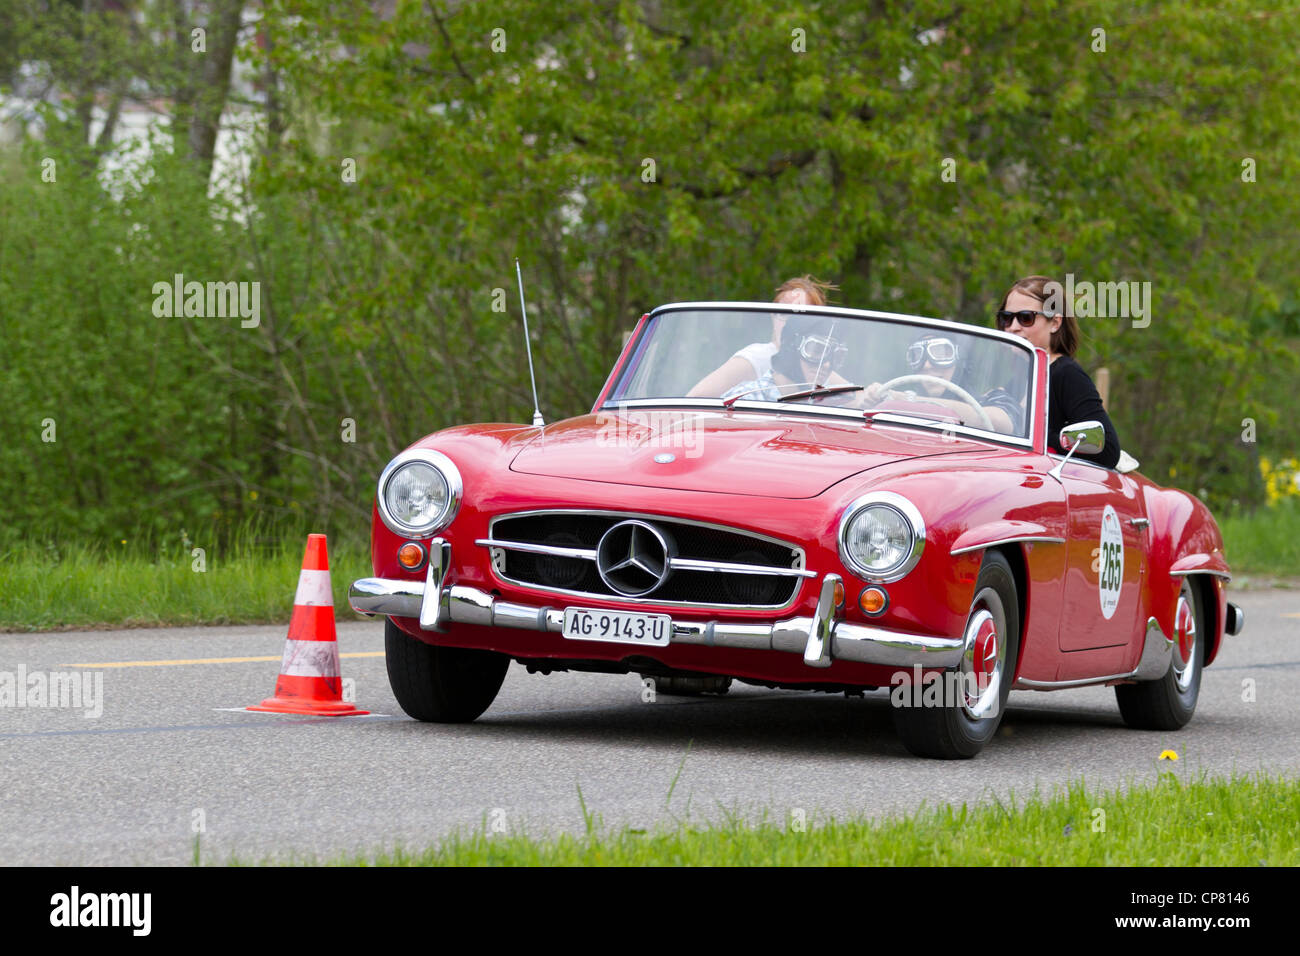 vintage car mercedes benz 190 sl from 1960 at grand prix in stock photo royalty free image. Black Bedroom Furniture Sets. Home Design Ideas